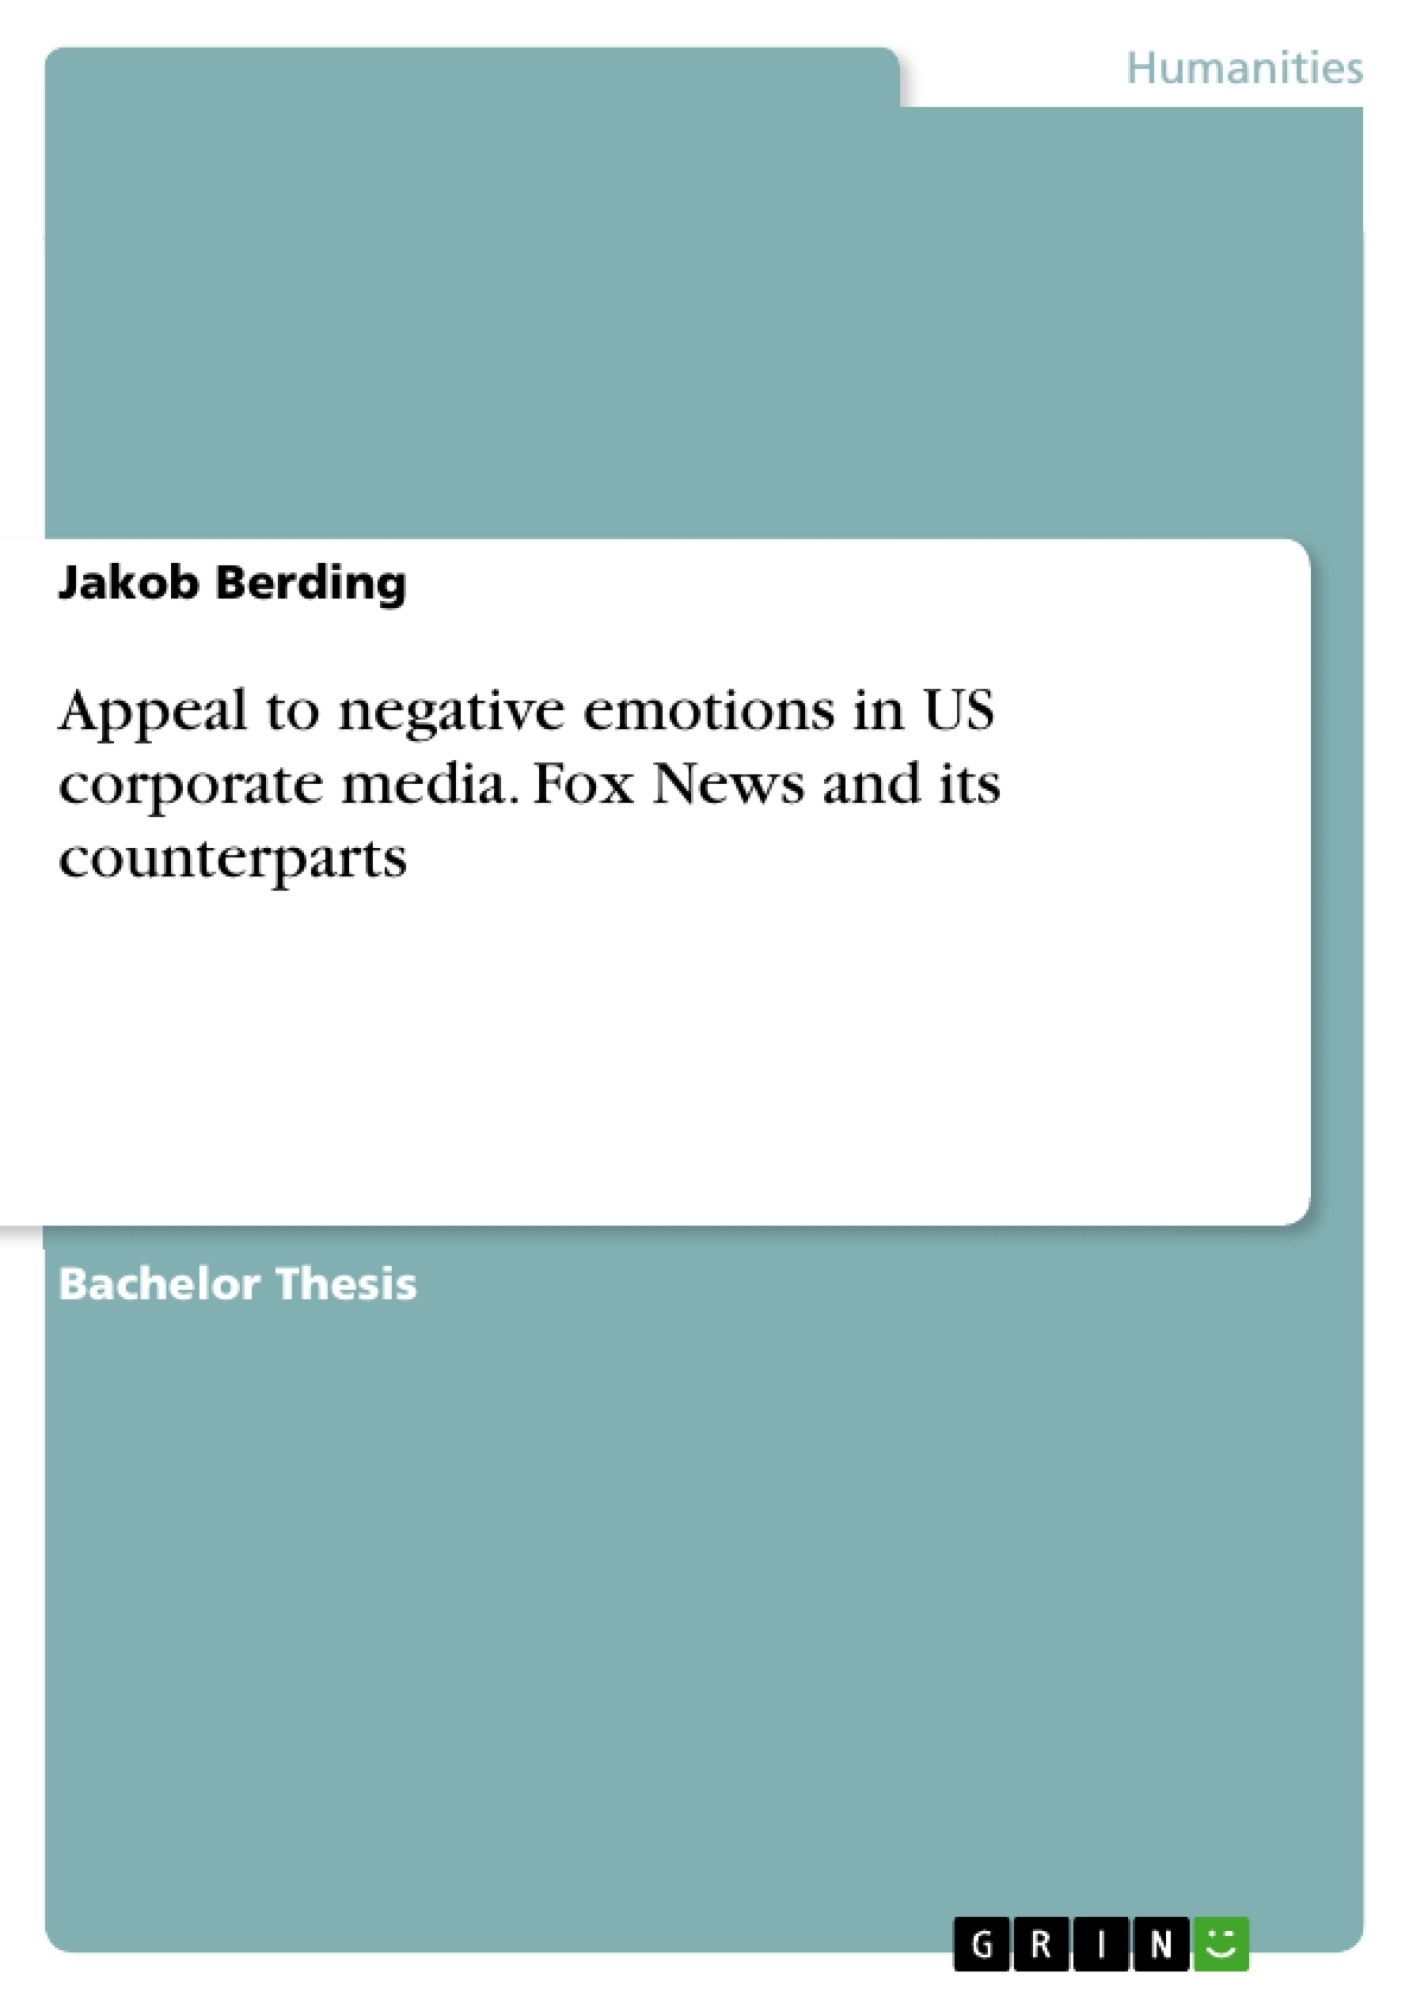 Title: Appeal to negative emotions in US corporate media. Fox News and its counterparts